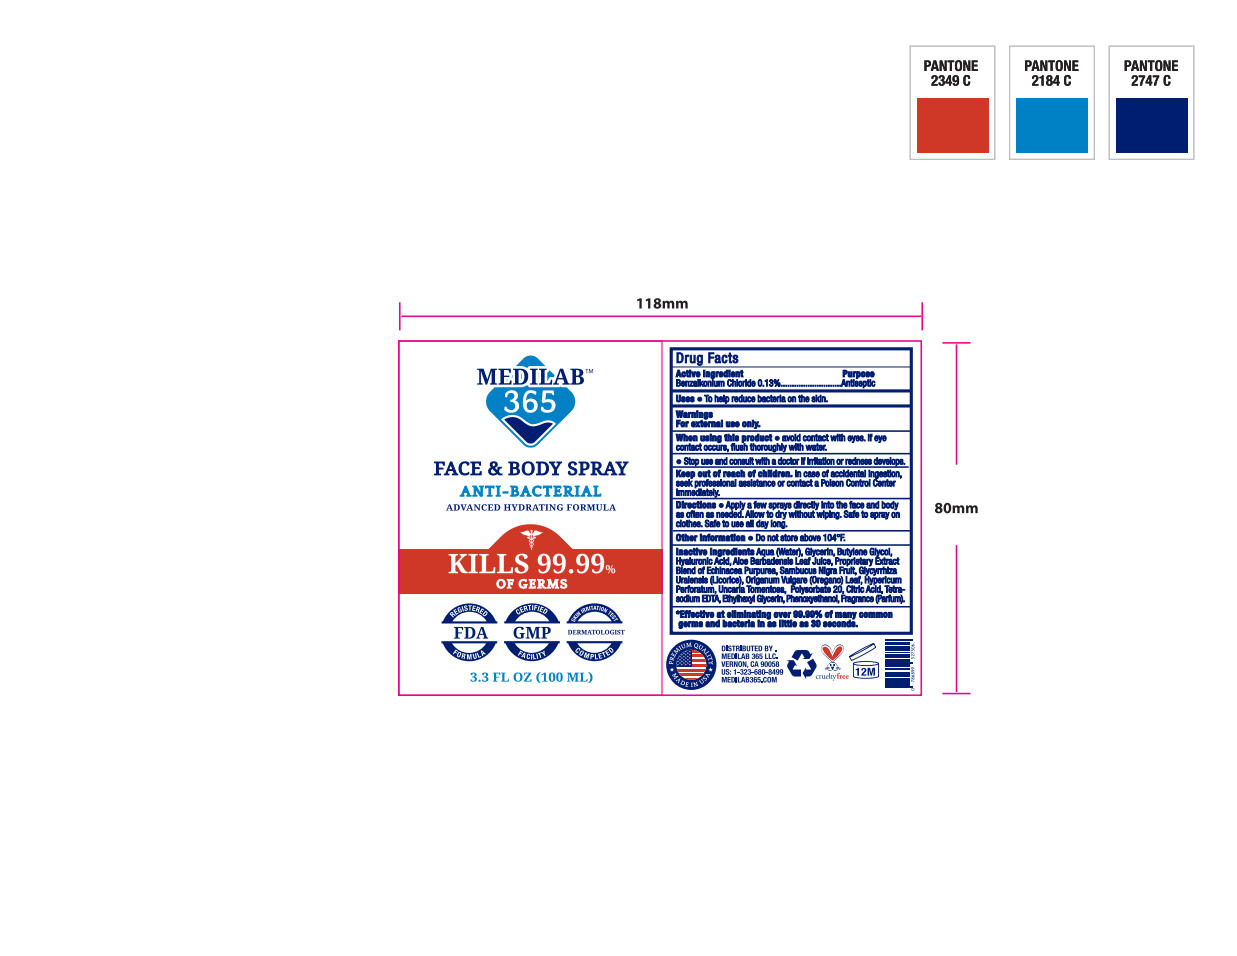 Antimicrobial (VMP Cosmetics): FDA Package Insert